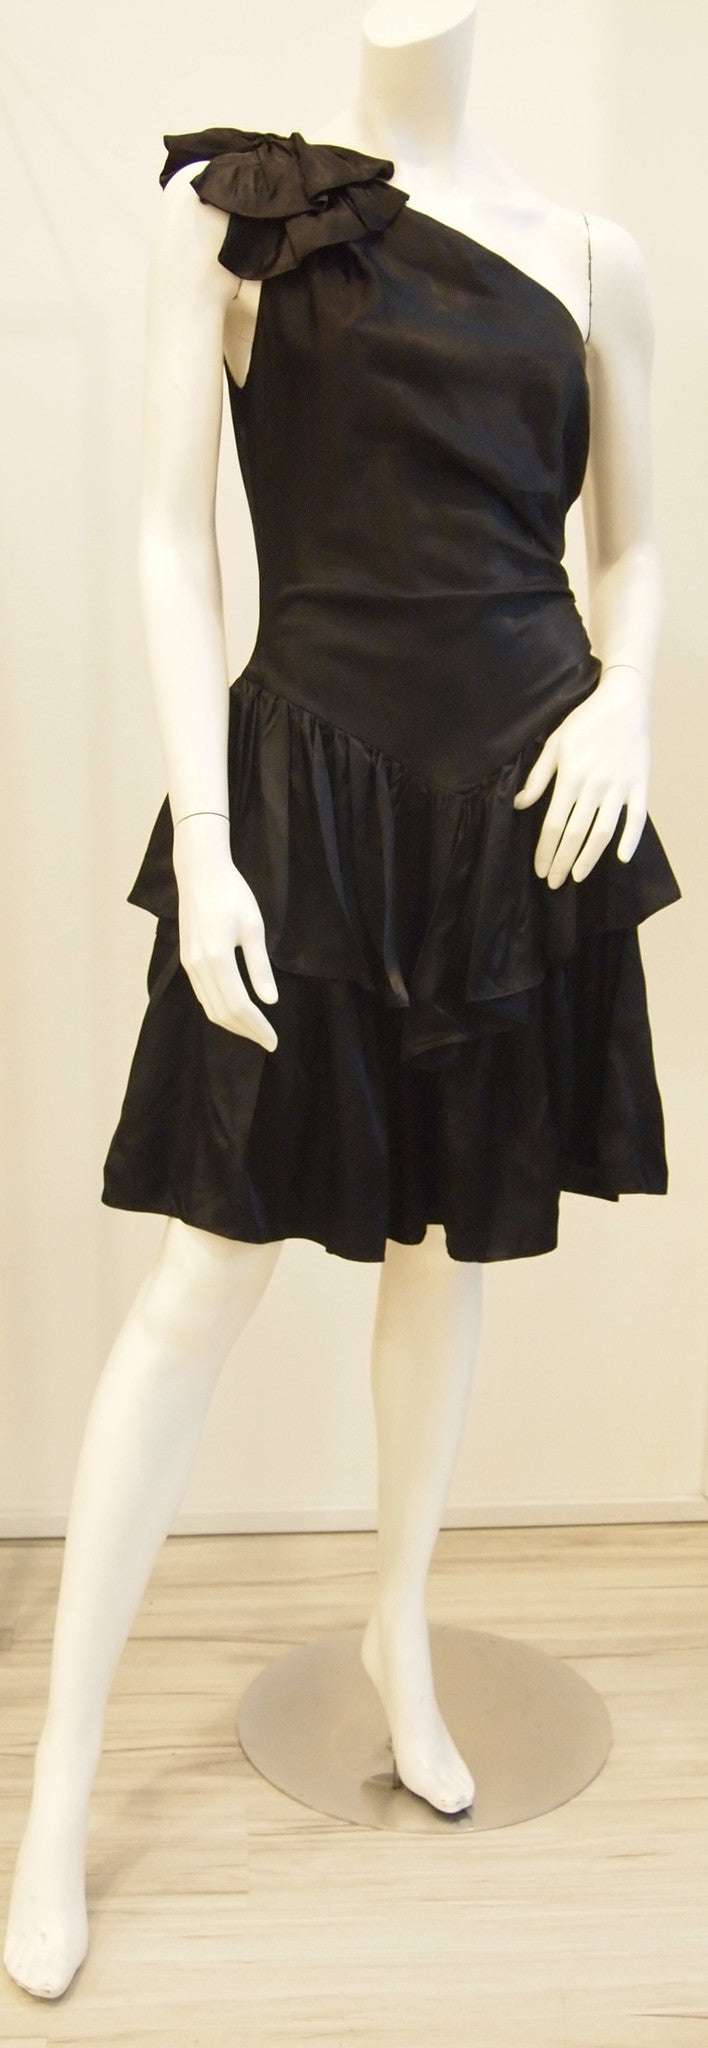 Midnight Black Toga Tiered Vintage Party Dress